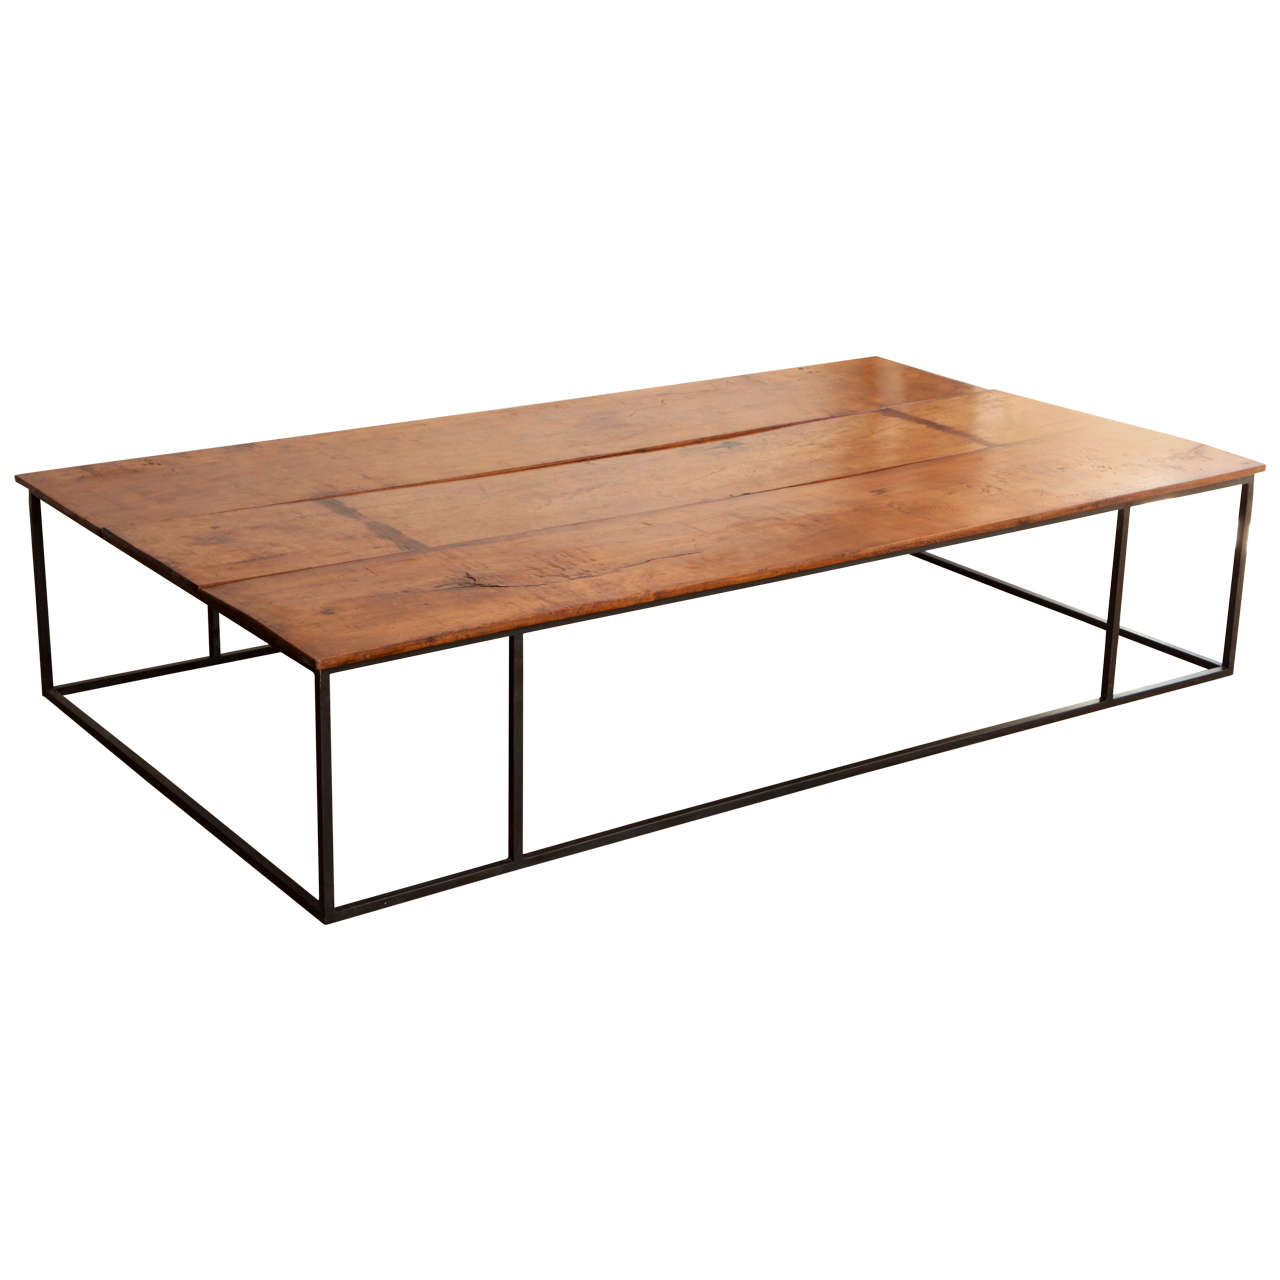 Couchtisch Mit Eisengestell Italian Lemonwood Coffee Table On Iron Base At 1stdibs